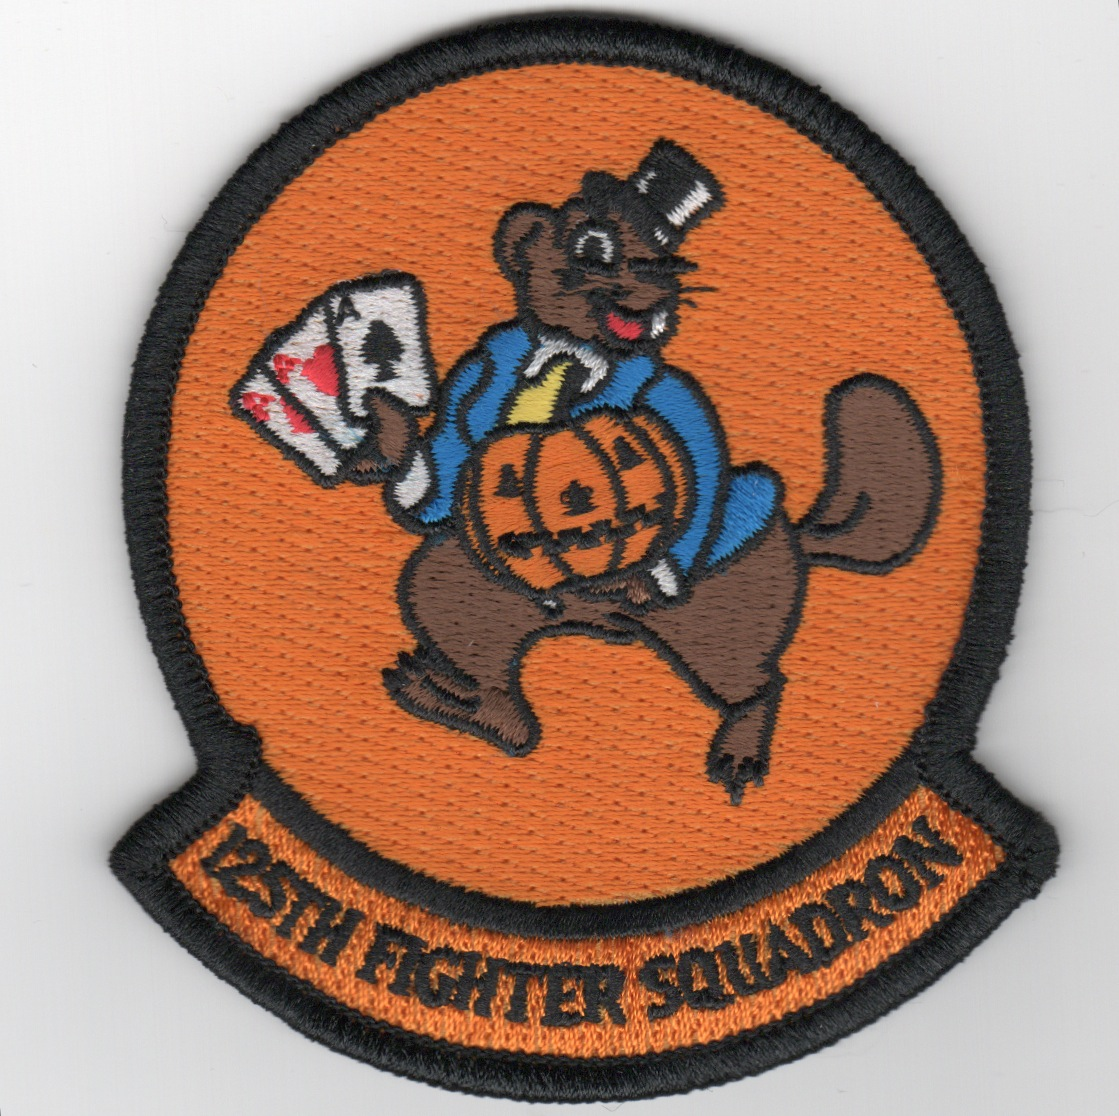 125FS 'HALLOWEEN' Patch (Orange)